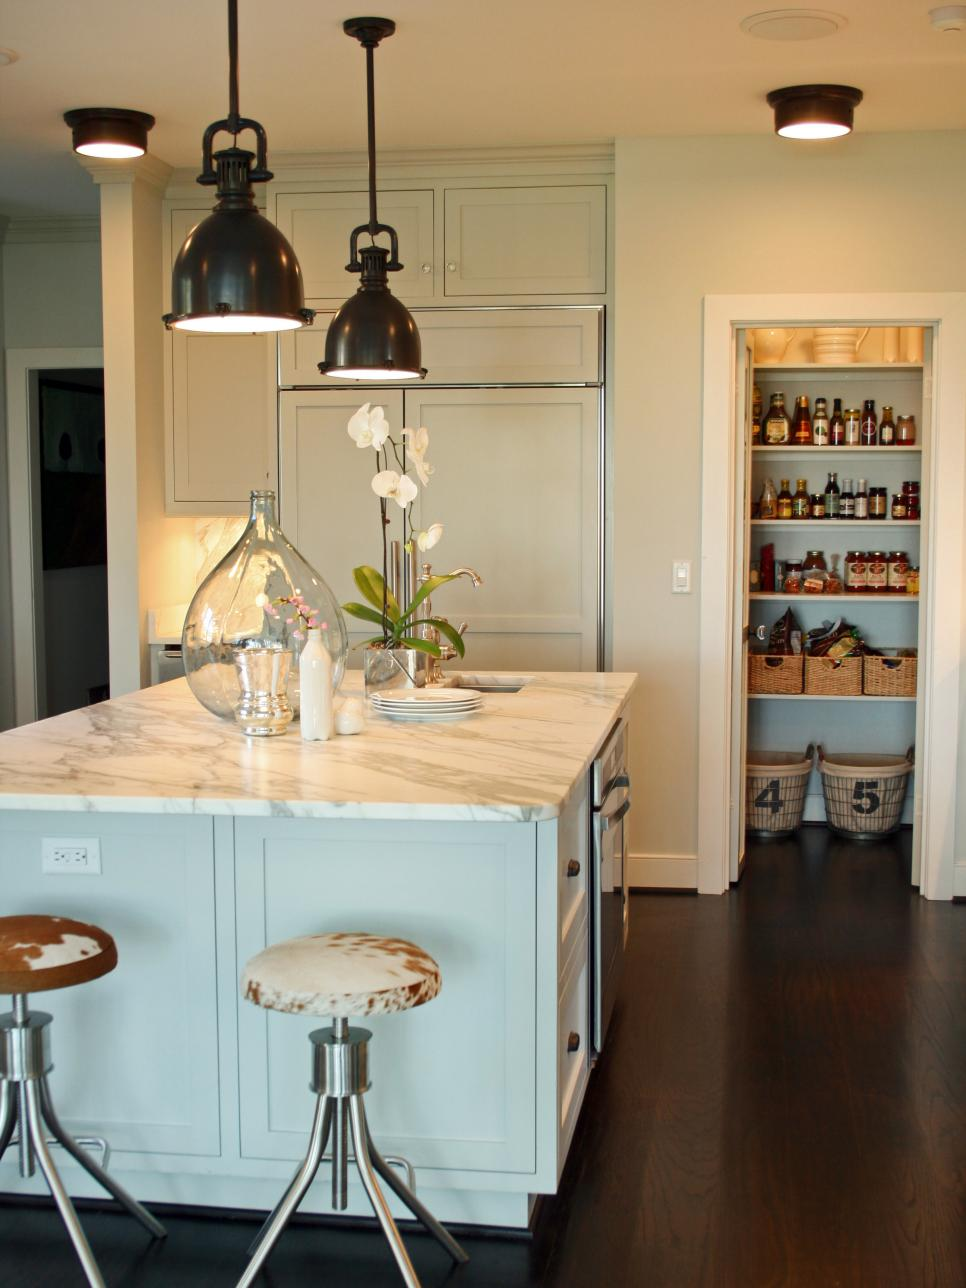 Combine White Island and Black Kitchen Lighting Ideas for Traditional Kitchen with Round Stools